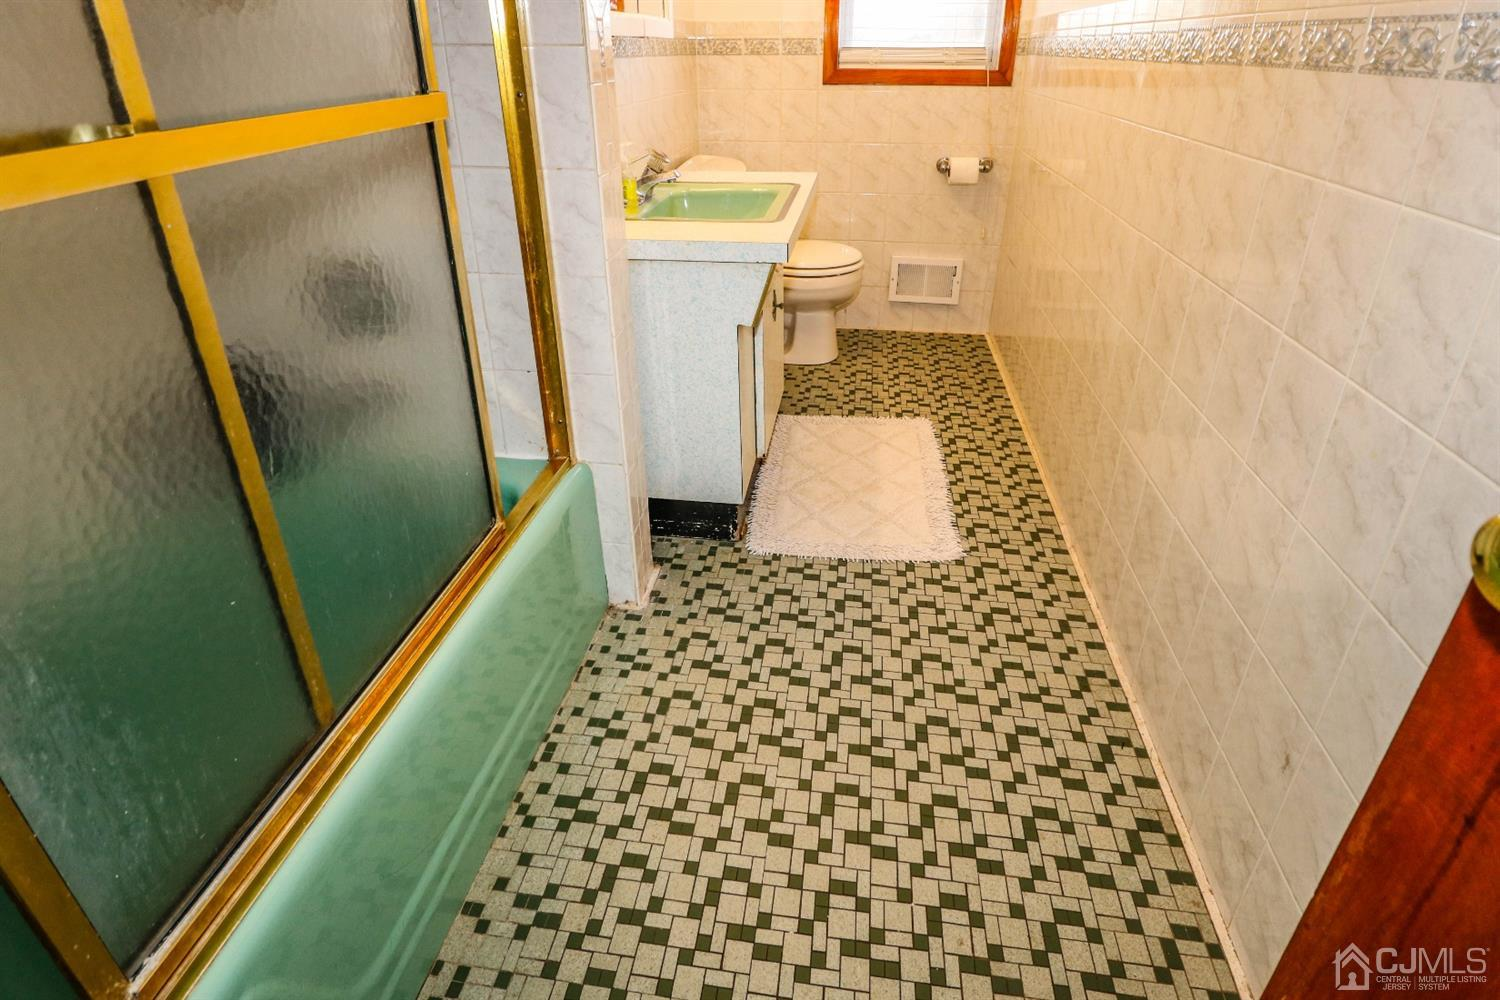 Tiled floors and partially tiled walls in main bath.